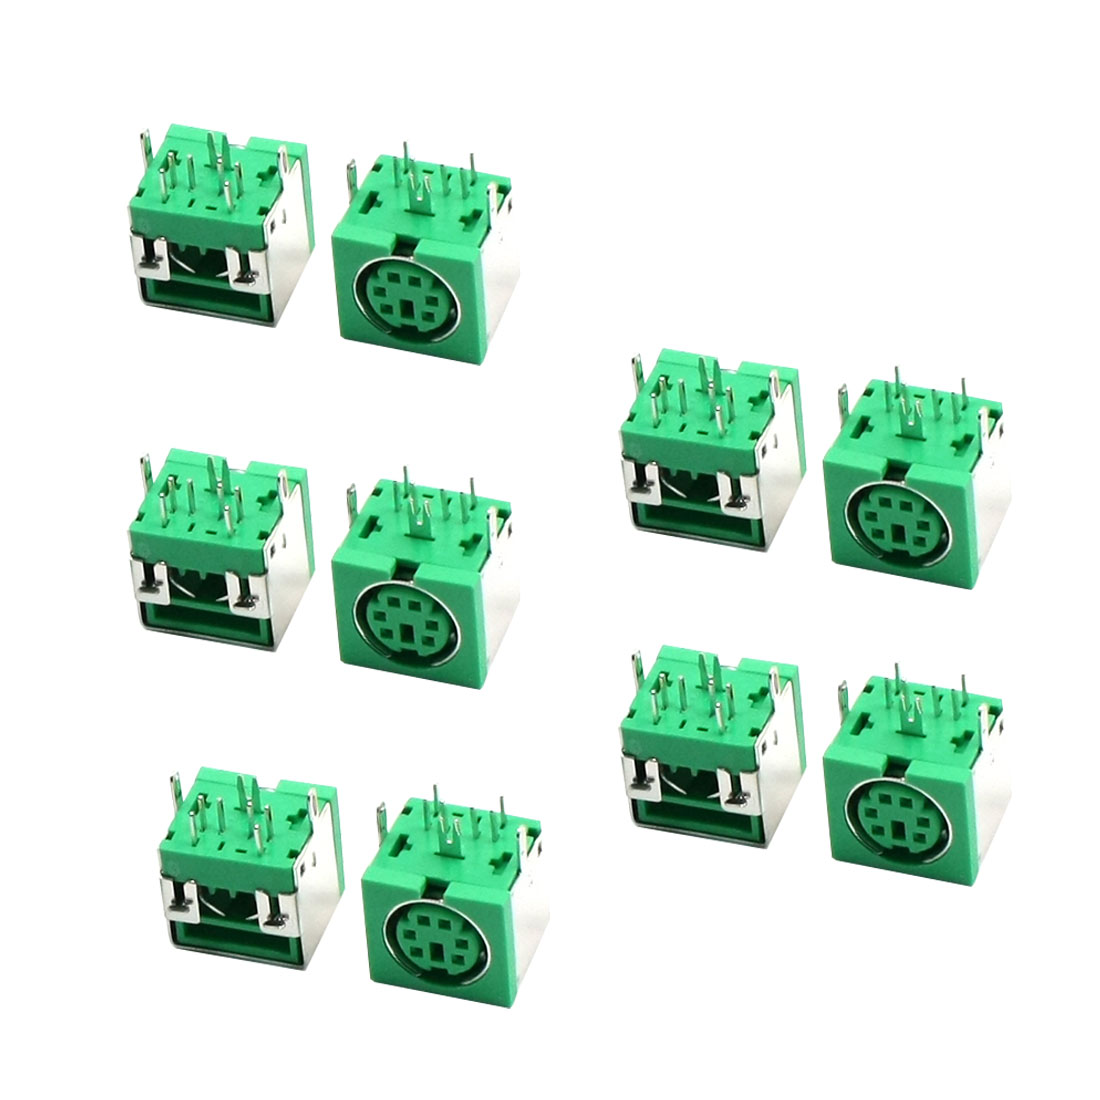 10pcs Metal Cover 6P DIN PS/2 Mouse Keyboard PCB Socket Connector Green